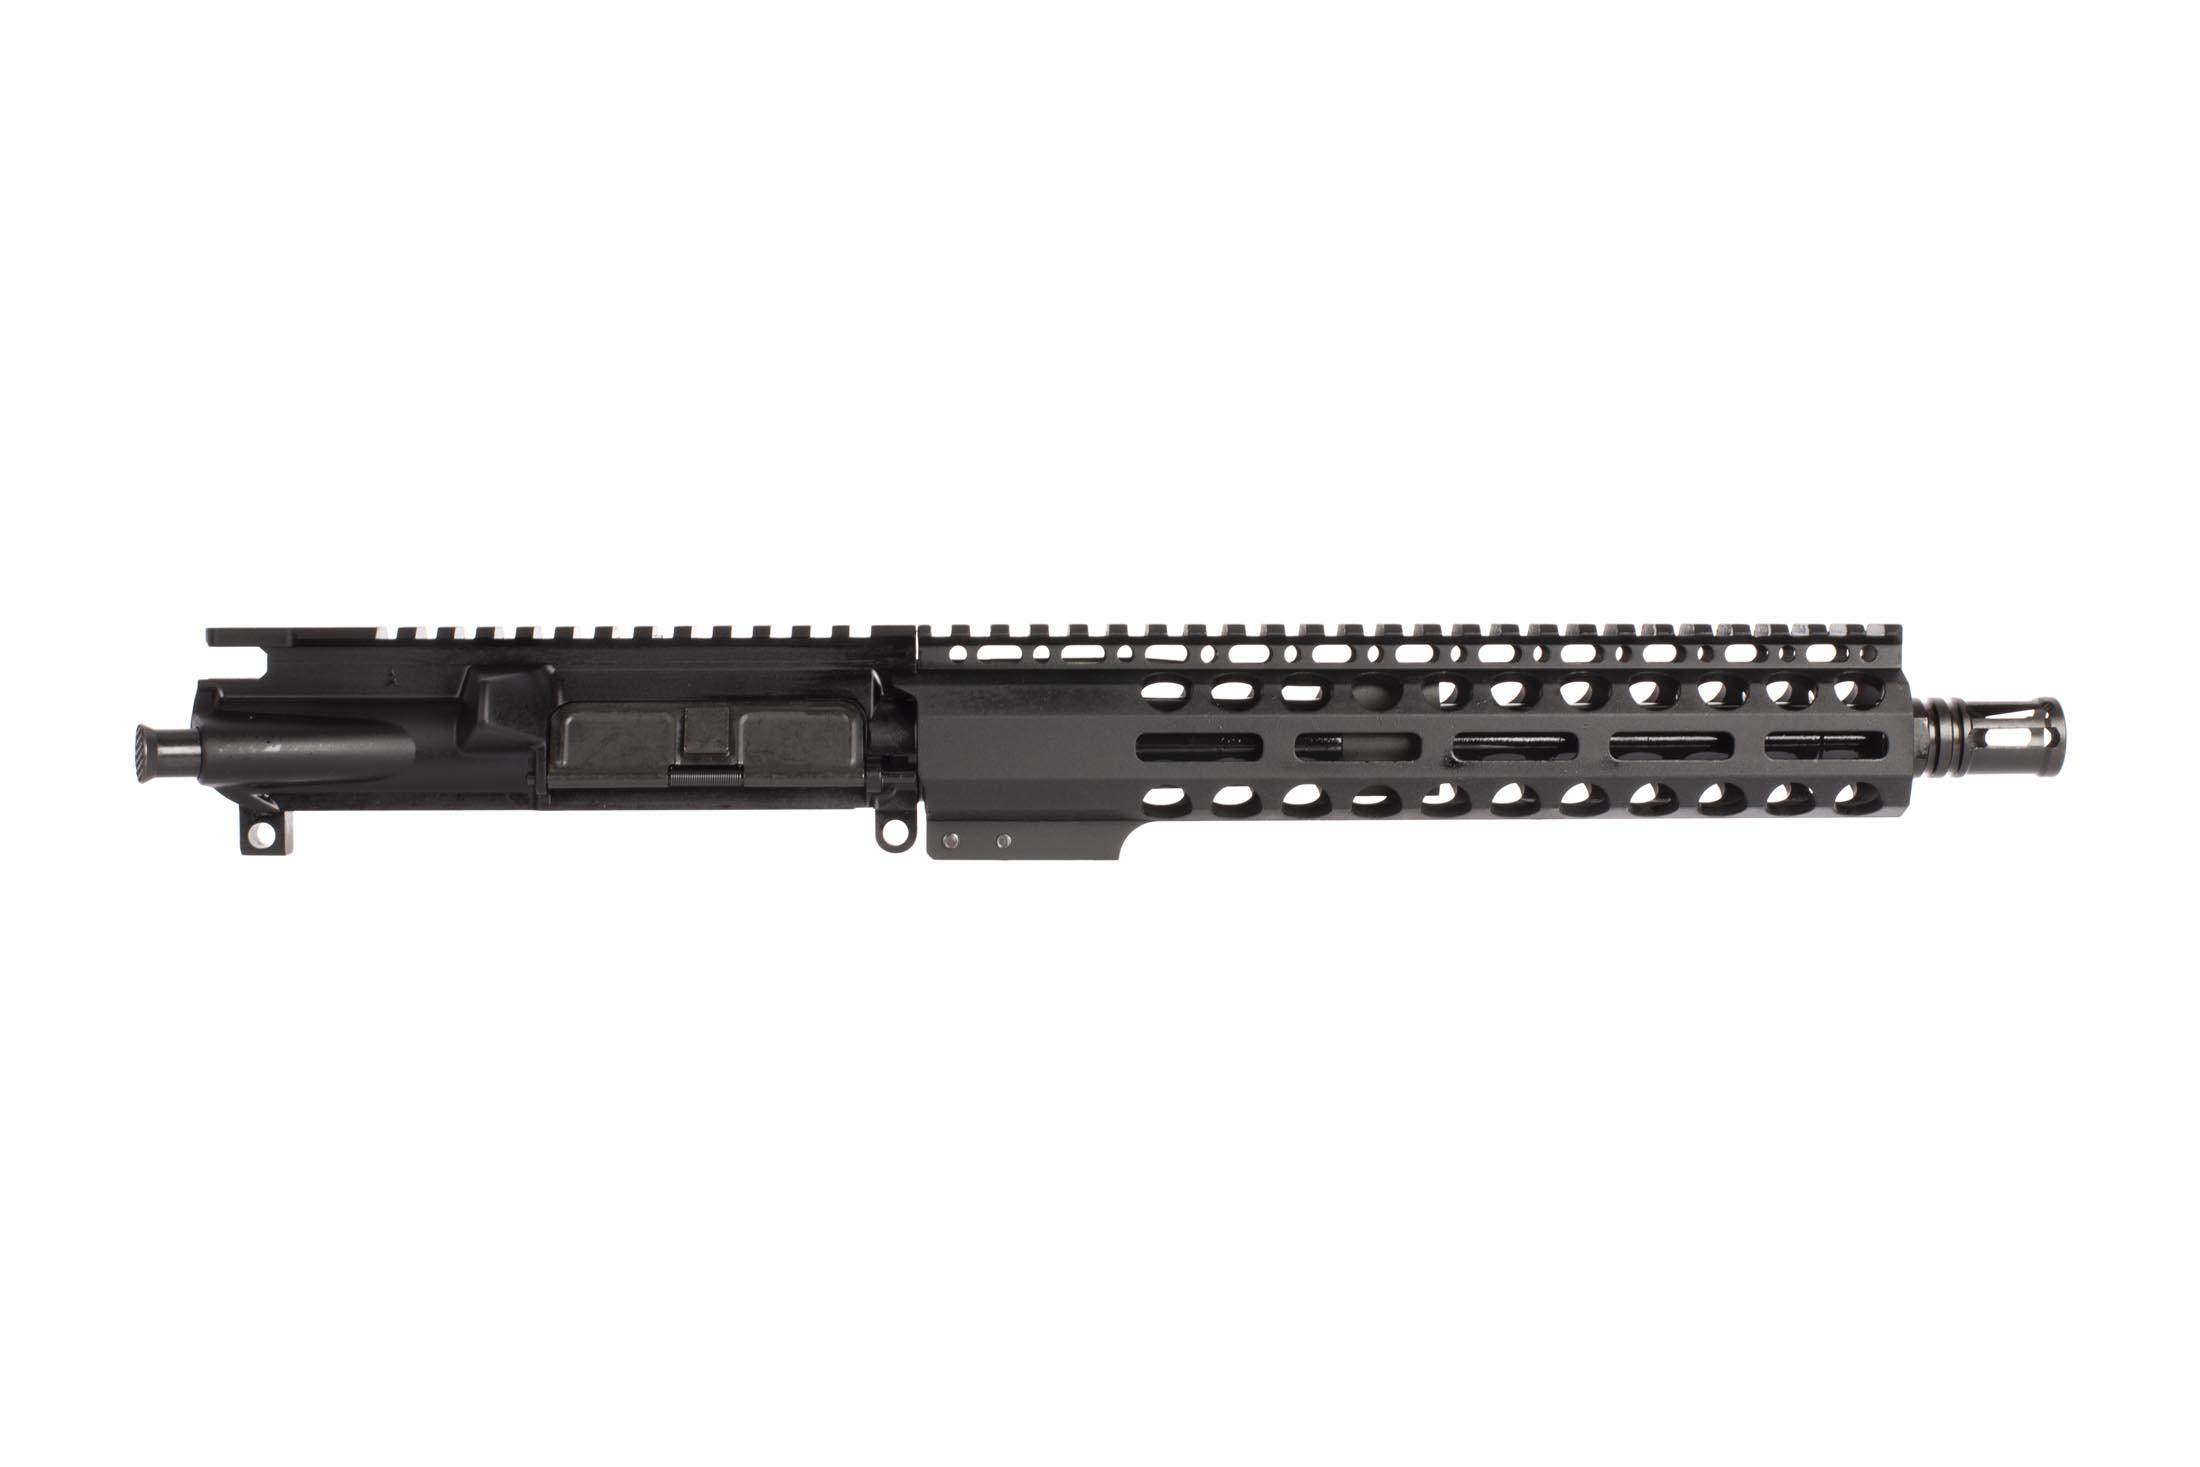 Radical Firearms 10.5in M4 barreled 300BLK AR-15 upper is fed by a reliable carbine length gas system with M-LOK rail